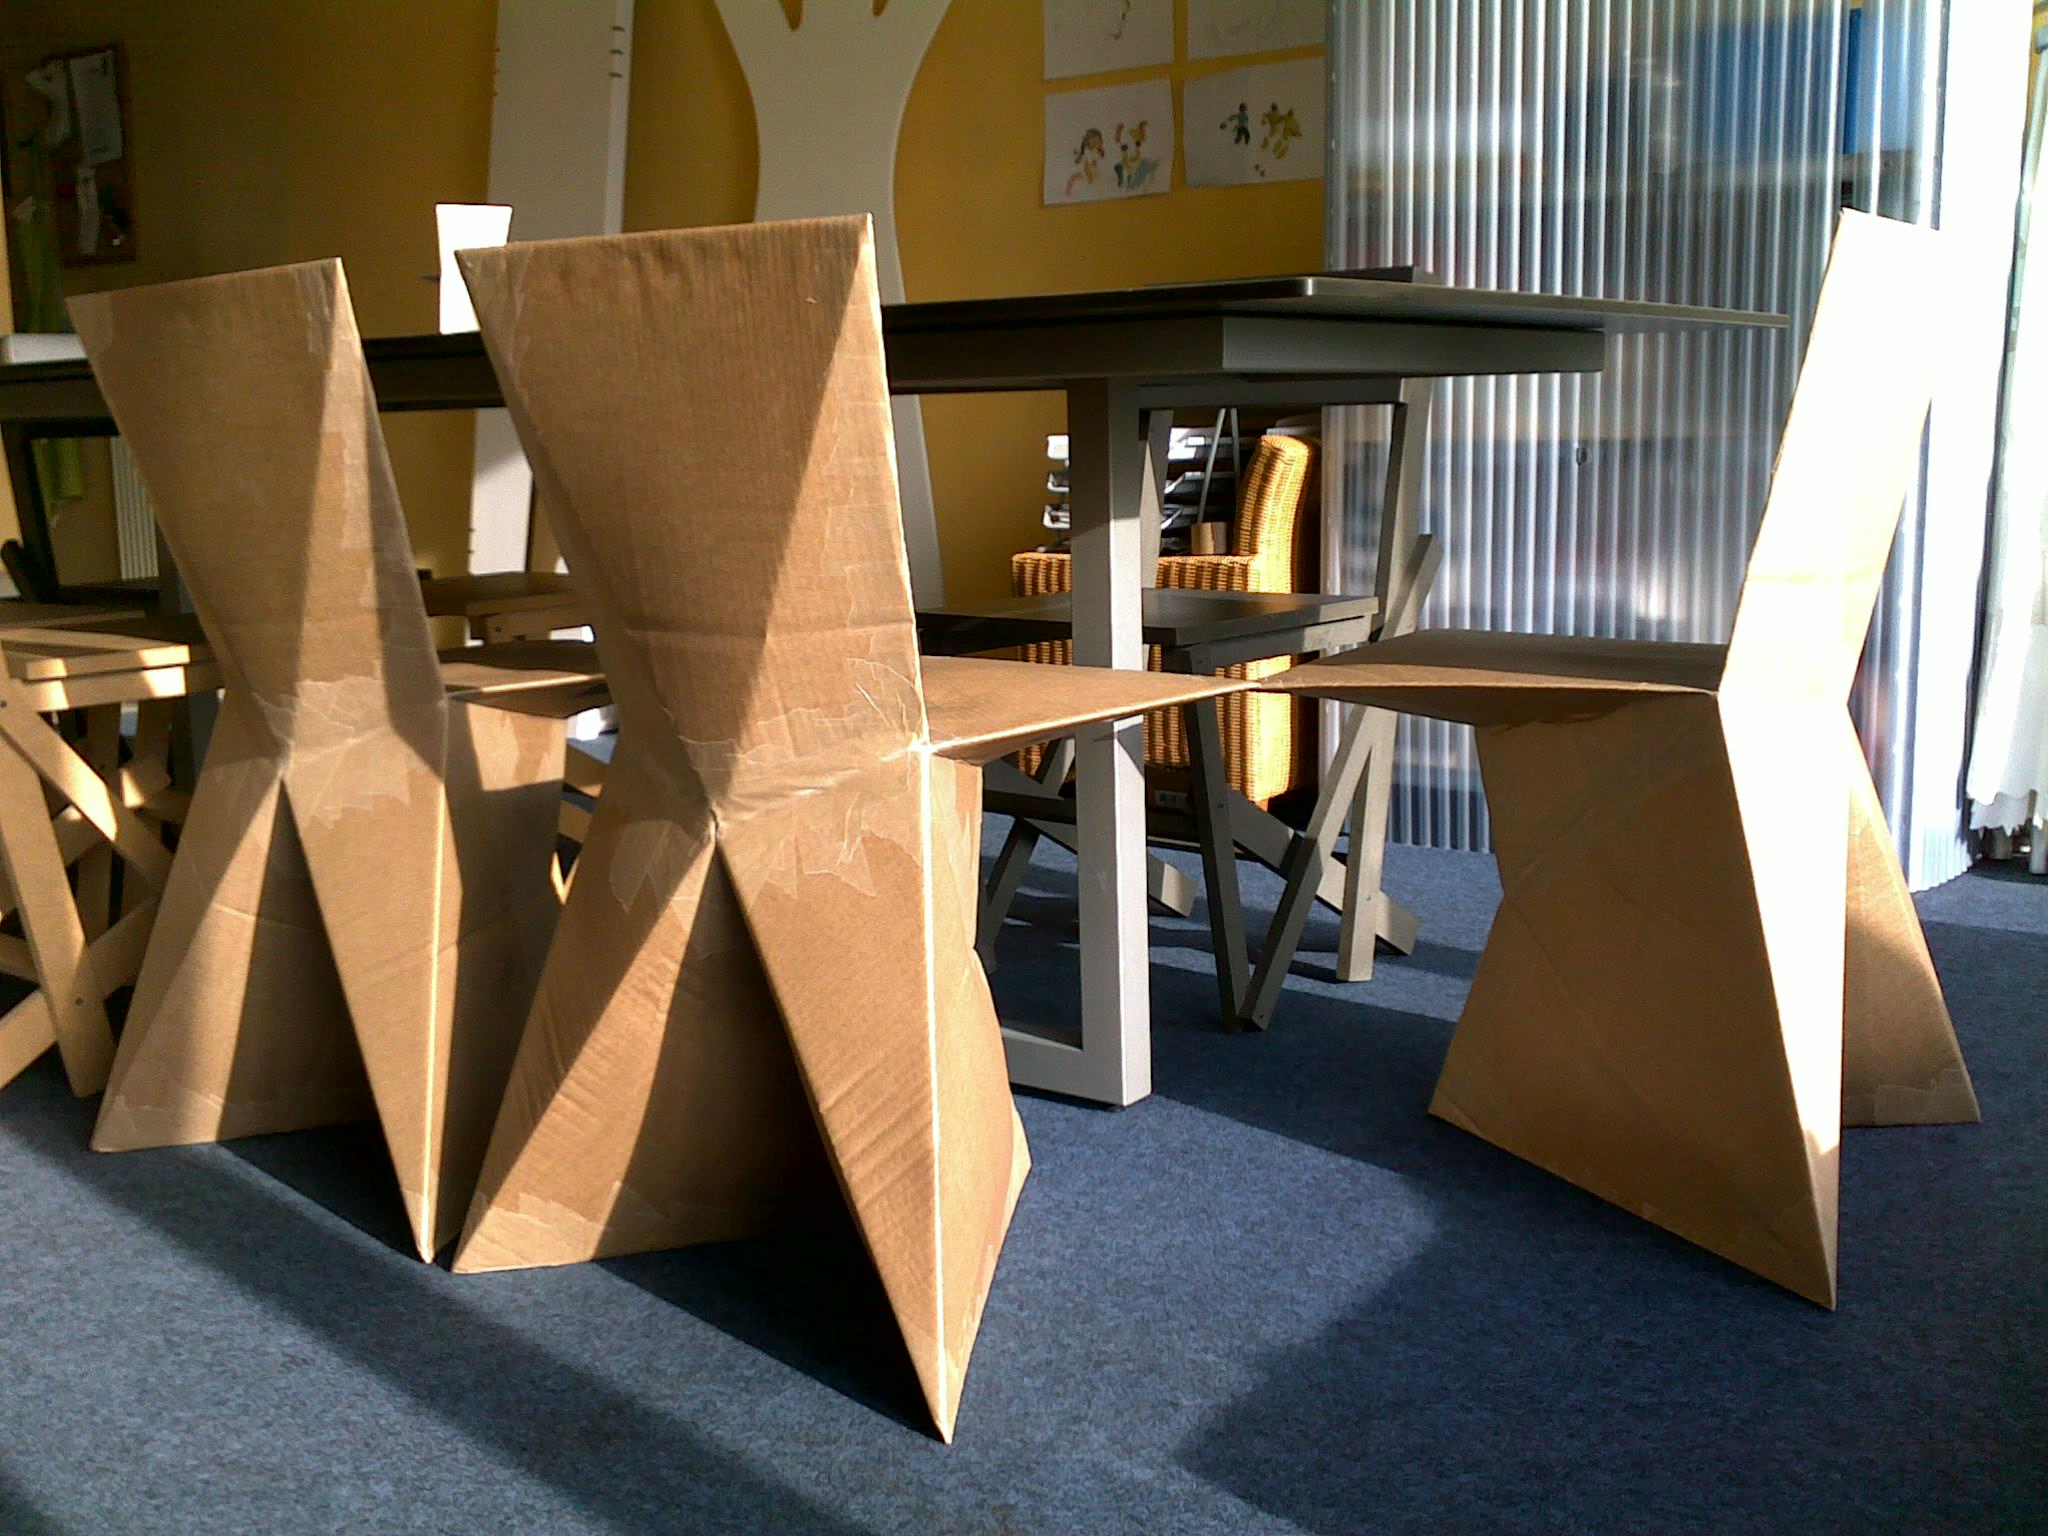 Cardboard chair design no glue - 17 Best Images About Cardboard Chairs On Pinterest Rocking Chairs Freedom And Chairs